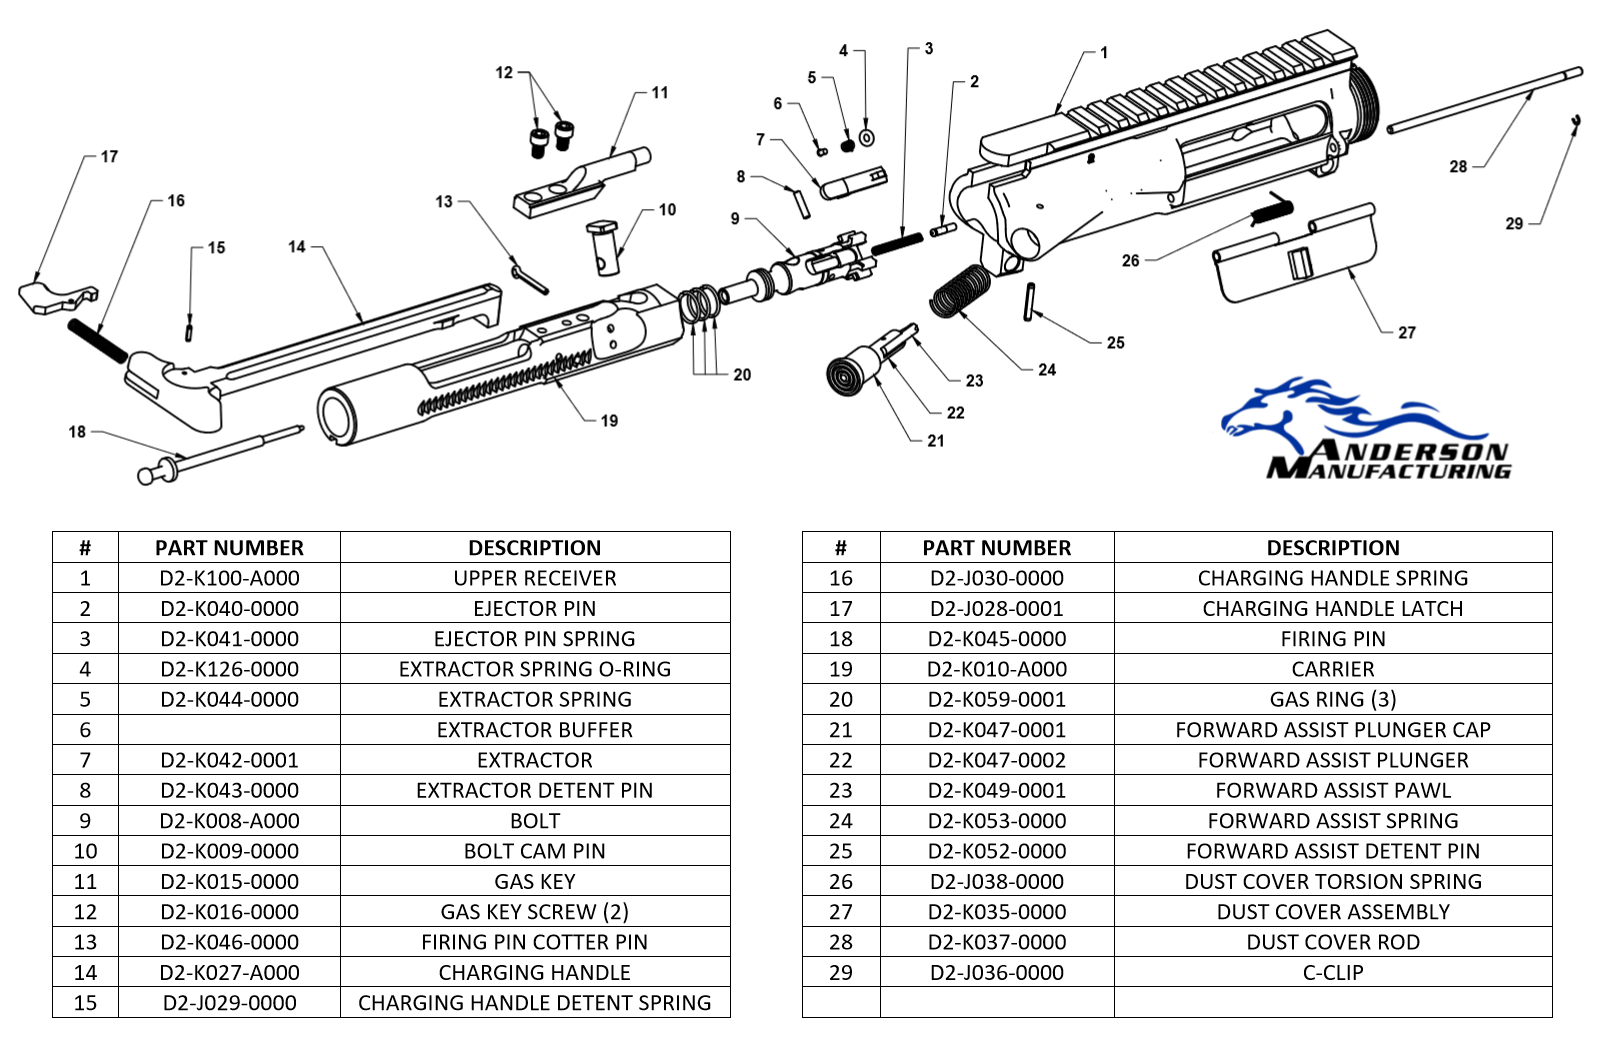 Lower Receiver Assembly Manual Guide